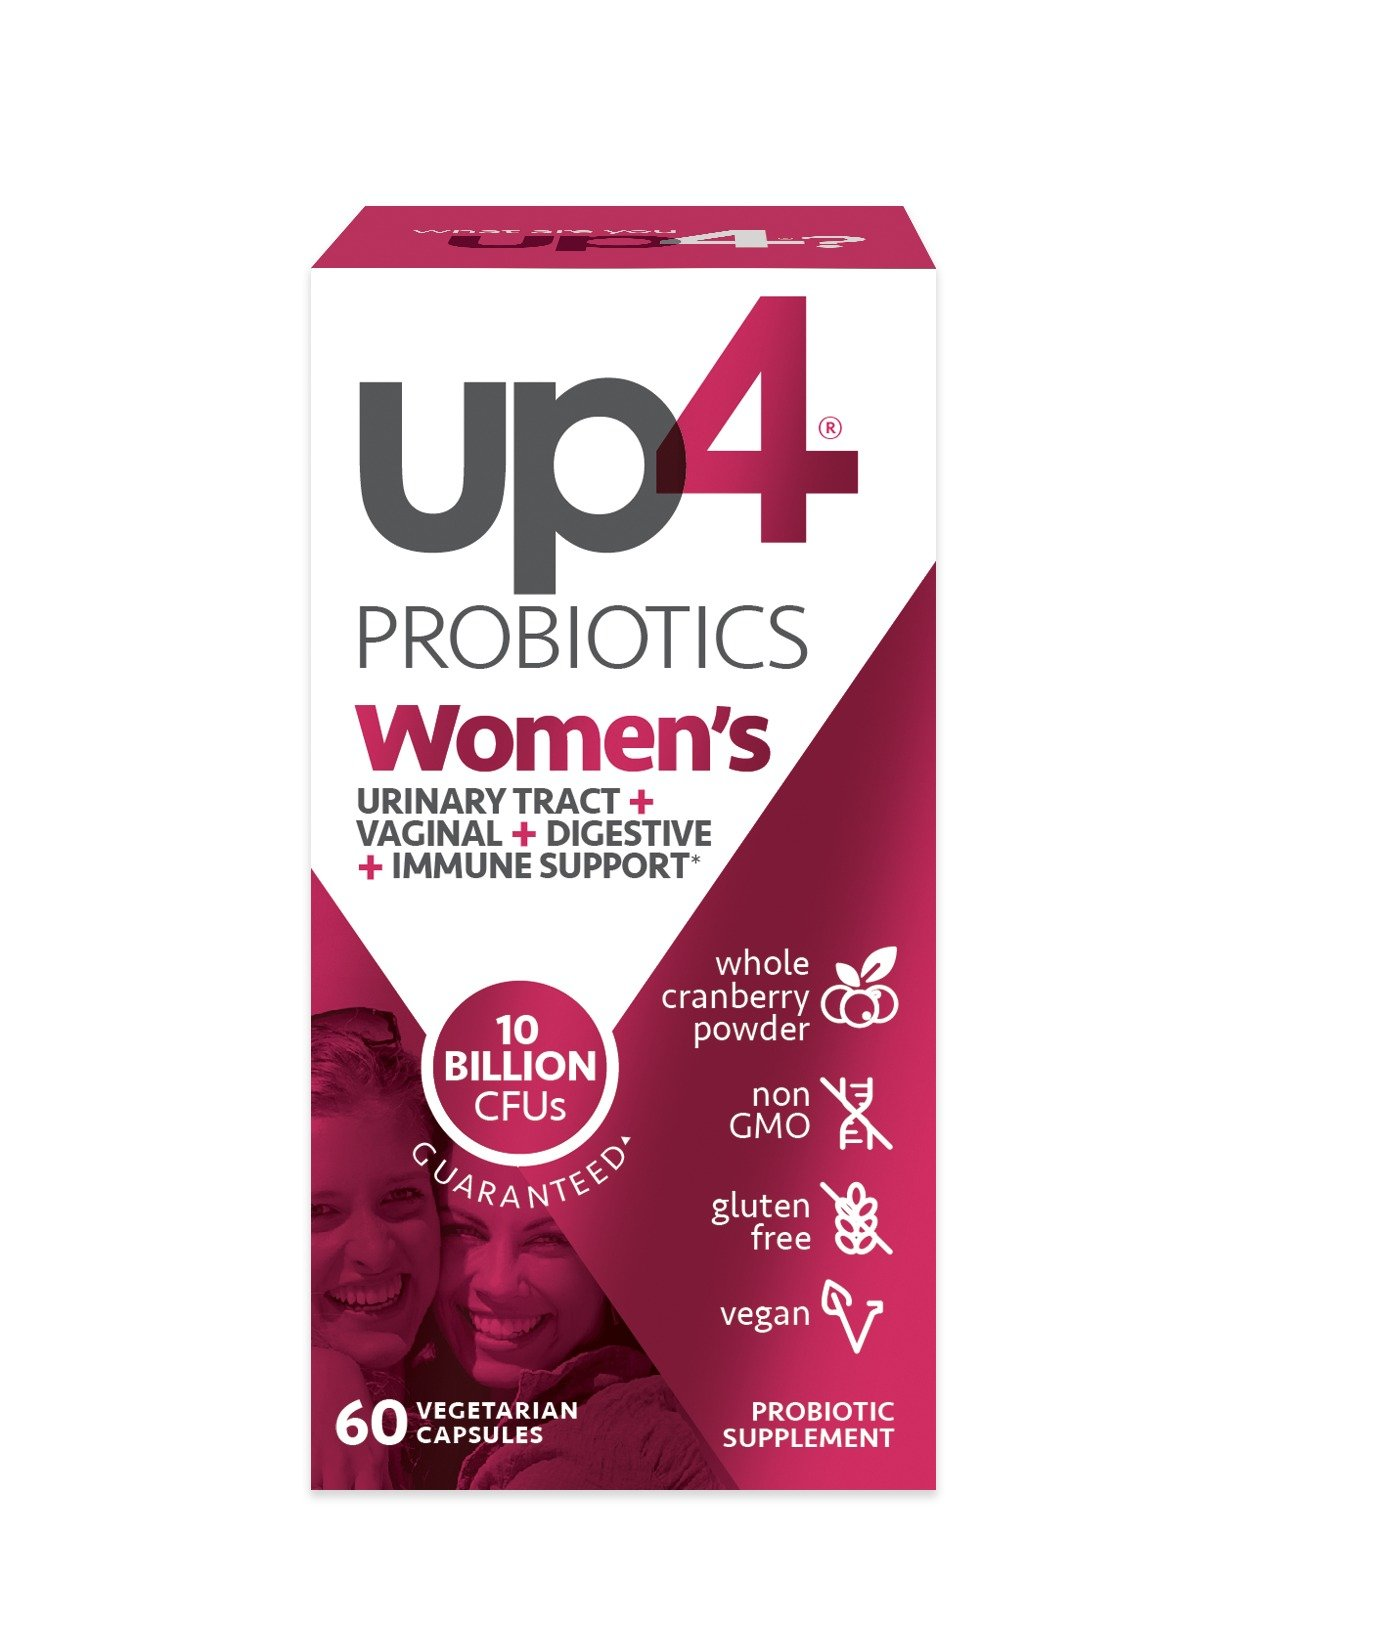 up4 Women's Advanced Care Probiotic Supplement | Vaginal Health + Digestive + Immune Support* | 25 Billion CFUs Guaranteed | Non-GMO, Gluten Free, Vegan | 60 Vegetarian Capsules by UP4